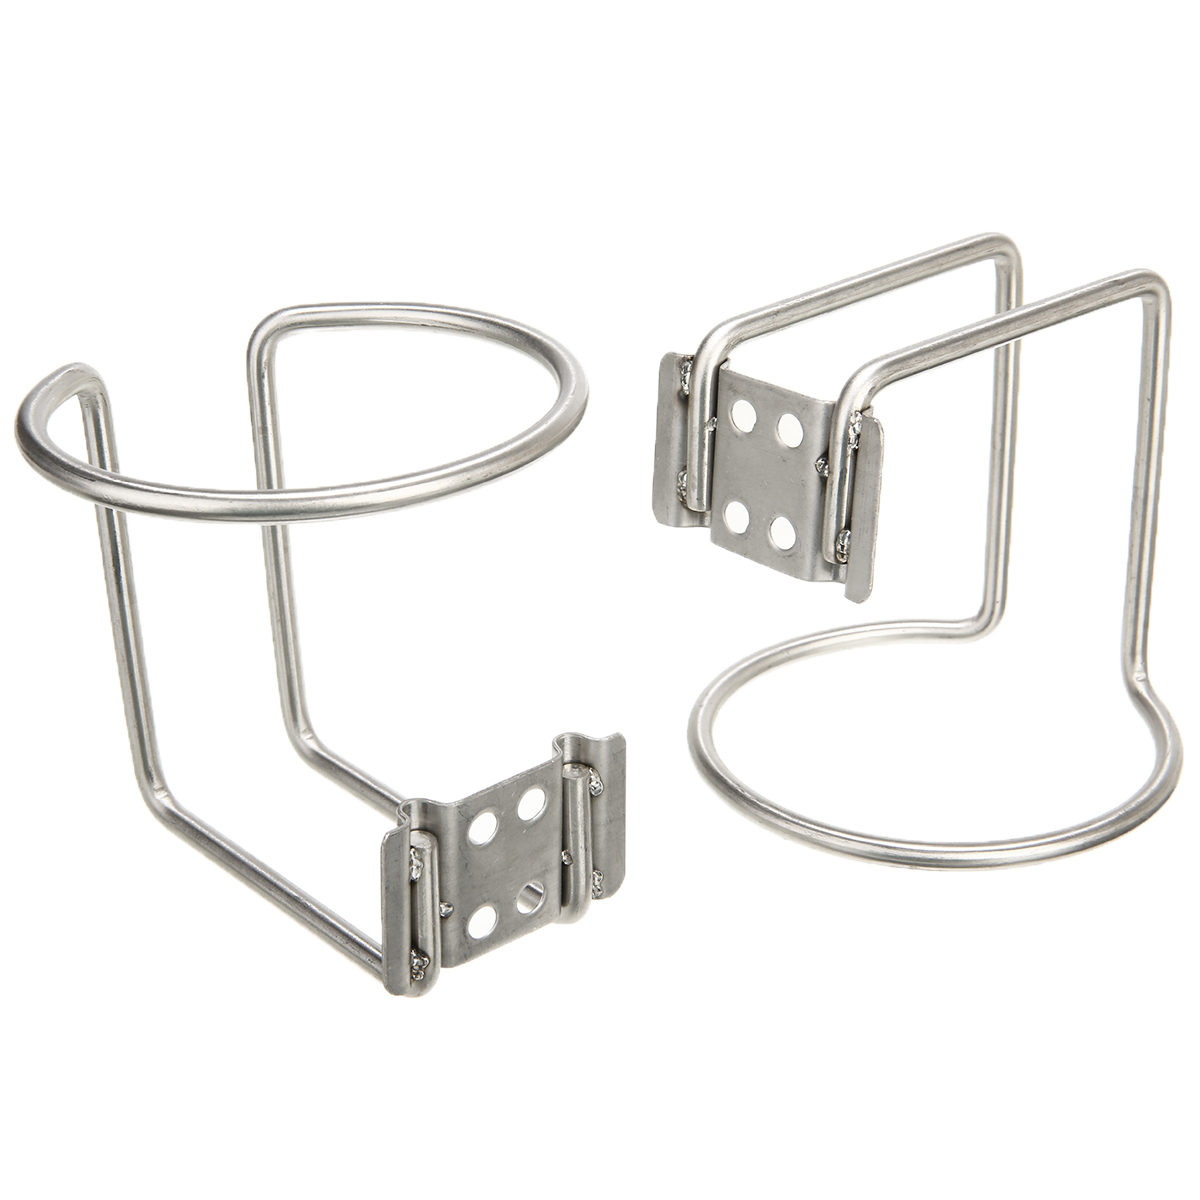 2pc Ring Cup Drink Holder Stainless Steel For Marine Boat Yacht Truck RV Drinking Cup Holder High Quality